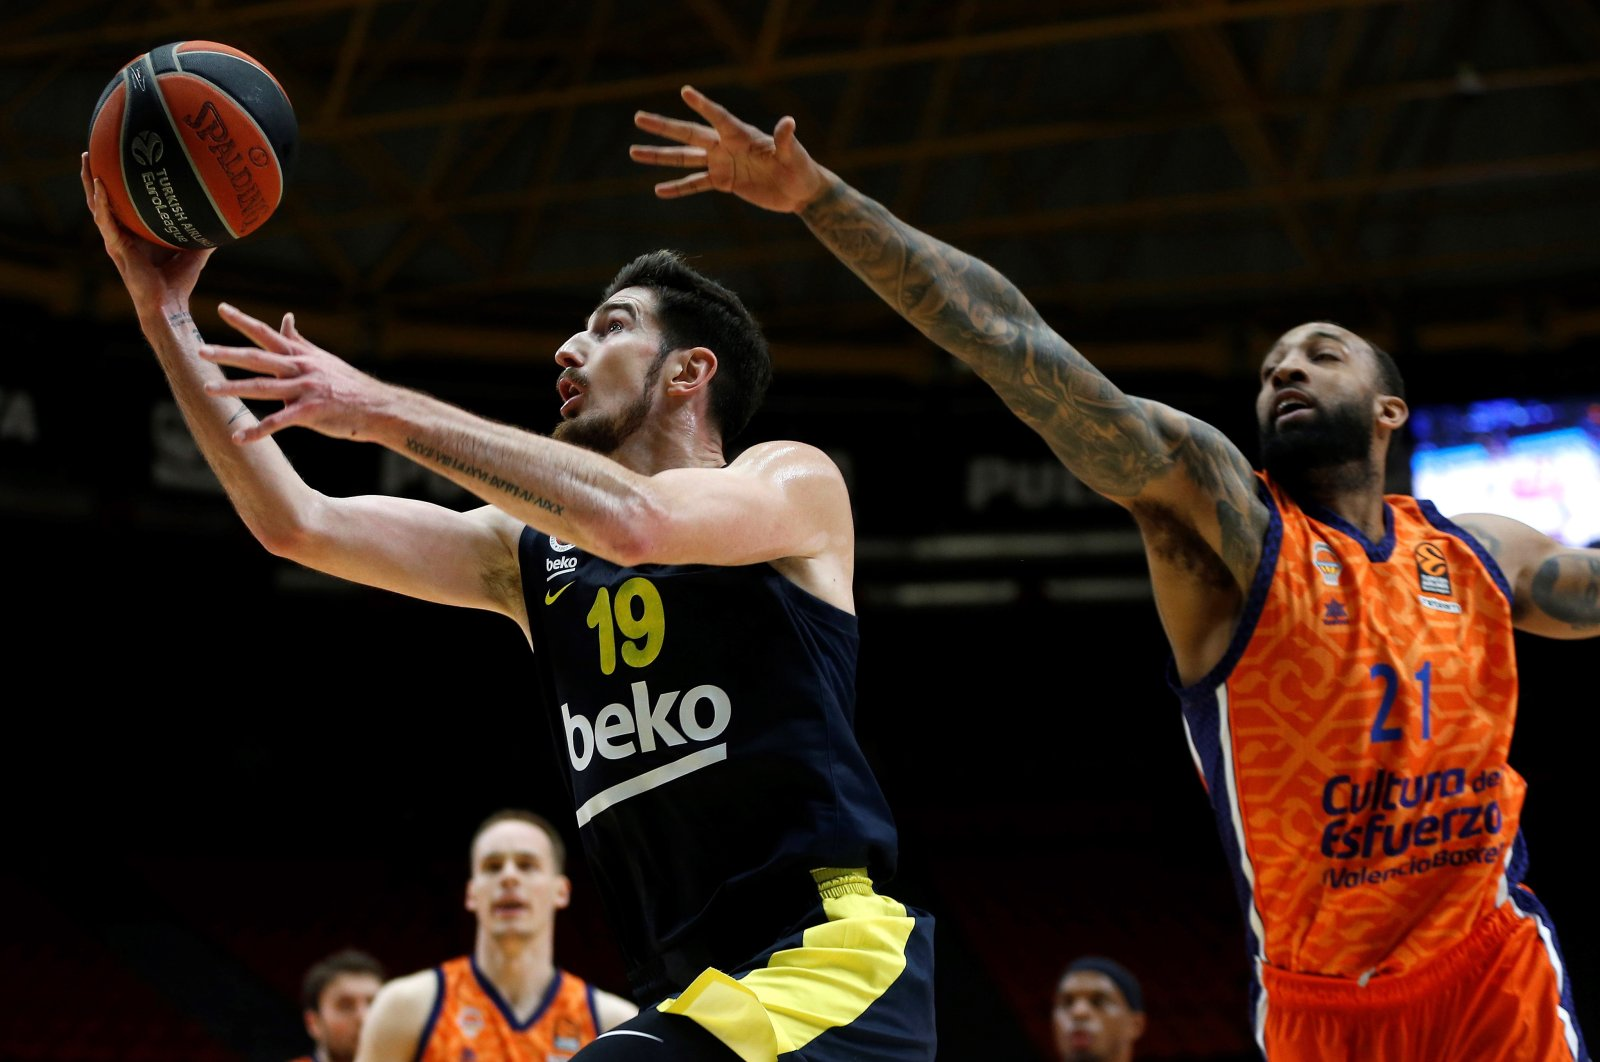 Valencia Basket's Derrick Williams (R) in action against Fenerbahçe's Nando De Colo during a EuroLeague basketball match at Fuente San Luis, Valencia, Spain, March 12, 2021. (EPA Photo).